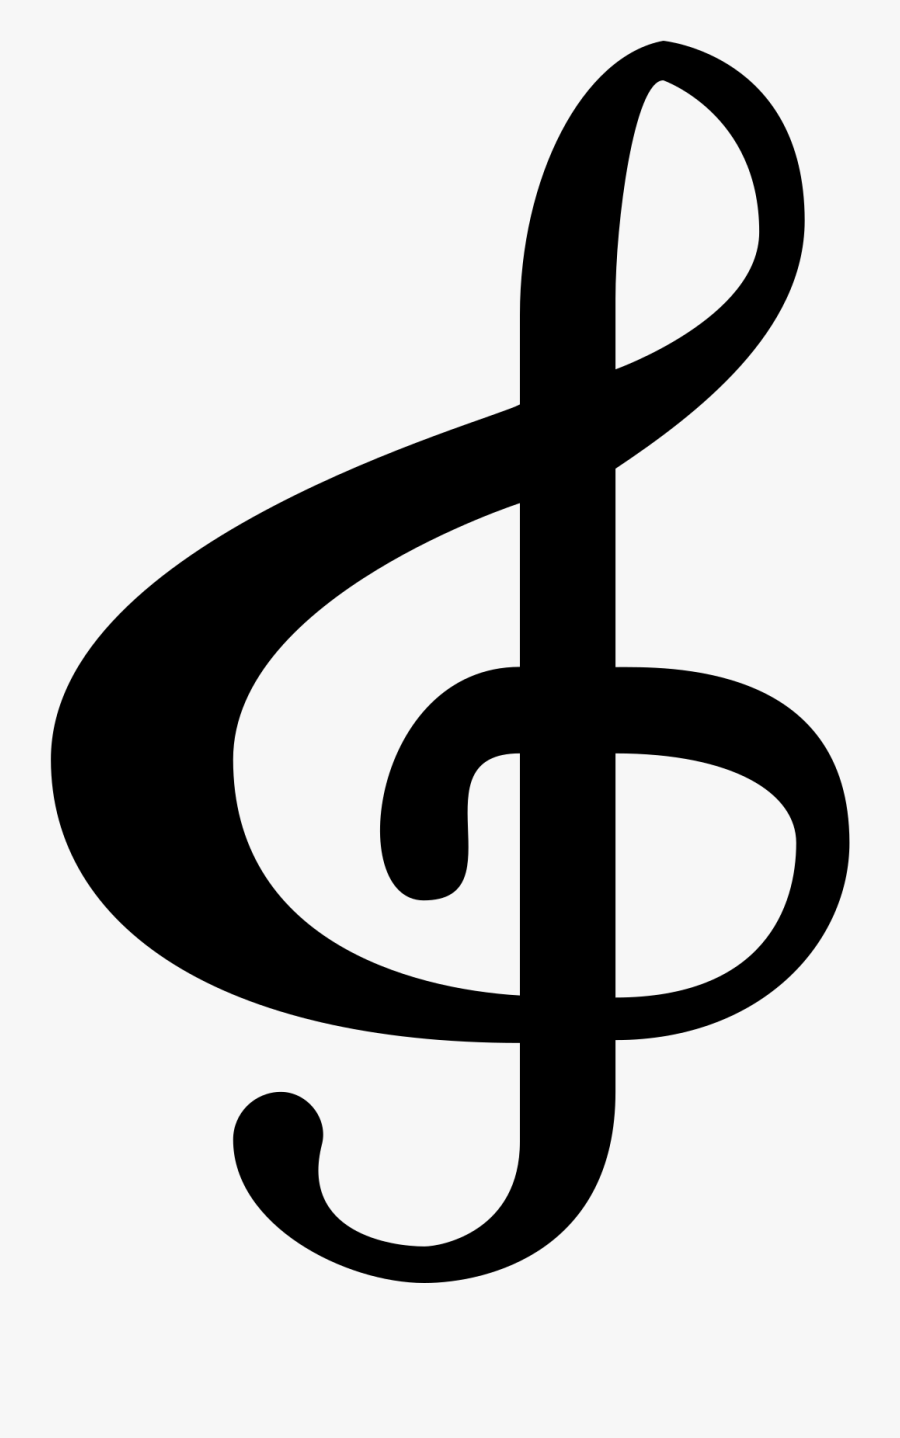 Music Png Icon : music, Black, Music, Transparent, Clipart, ClipartKey